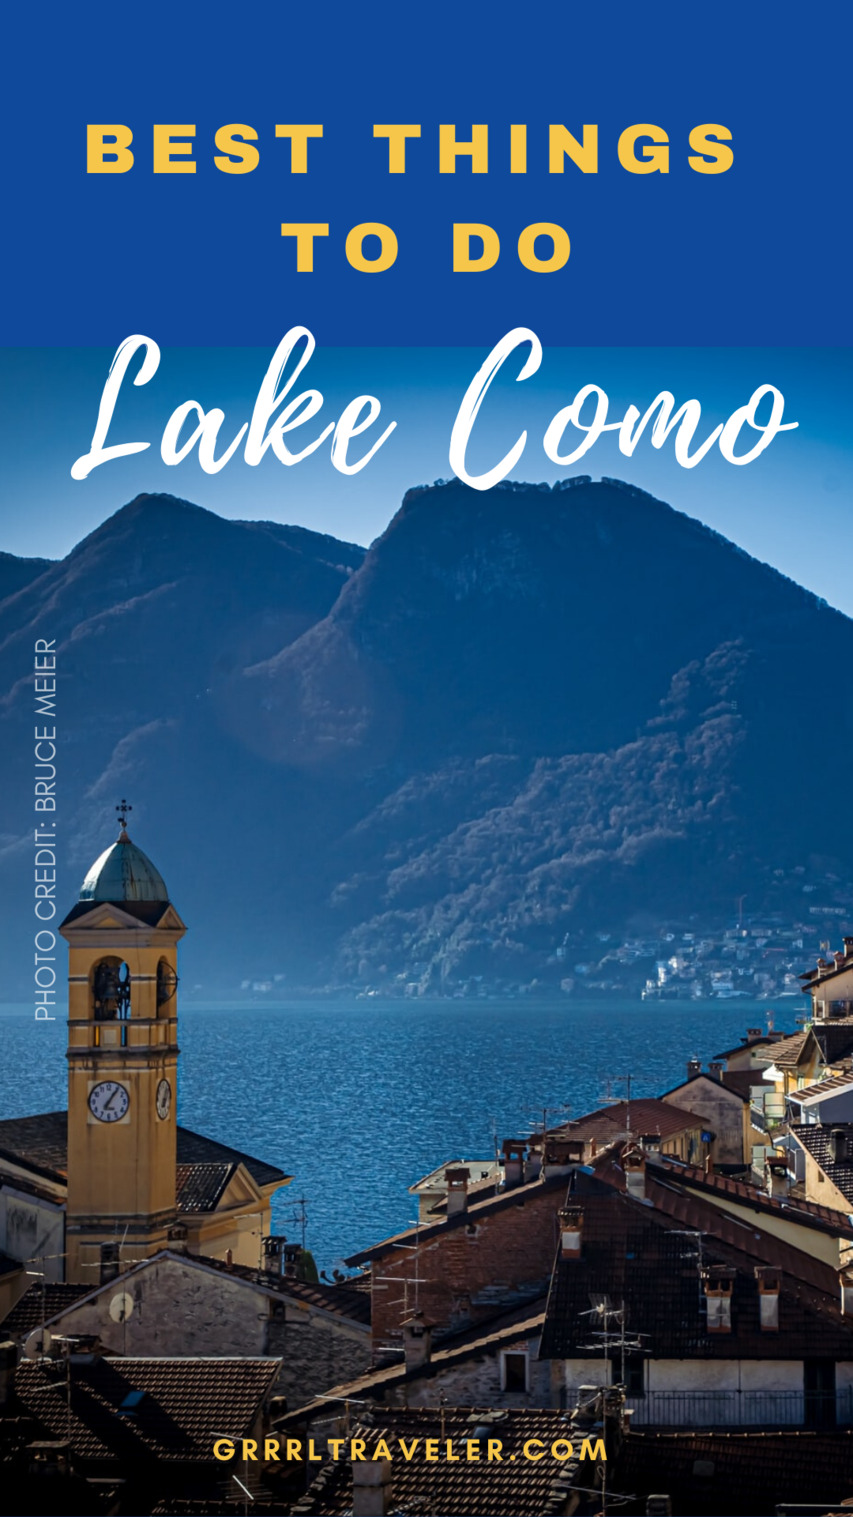 Lake Como travel guide; best things to do in Lake Como